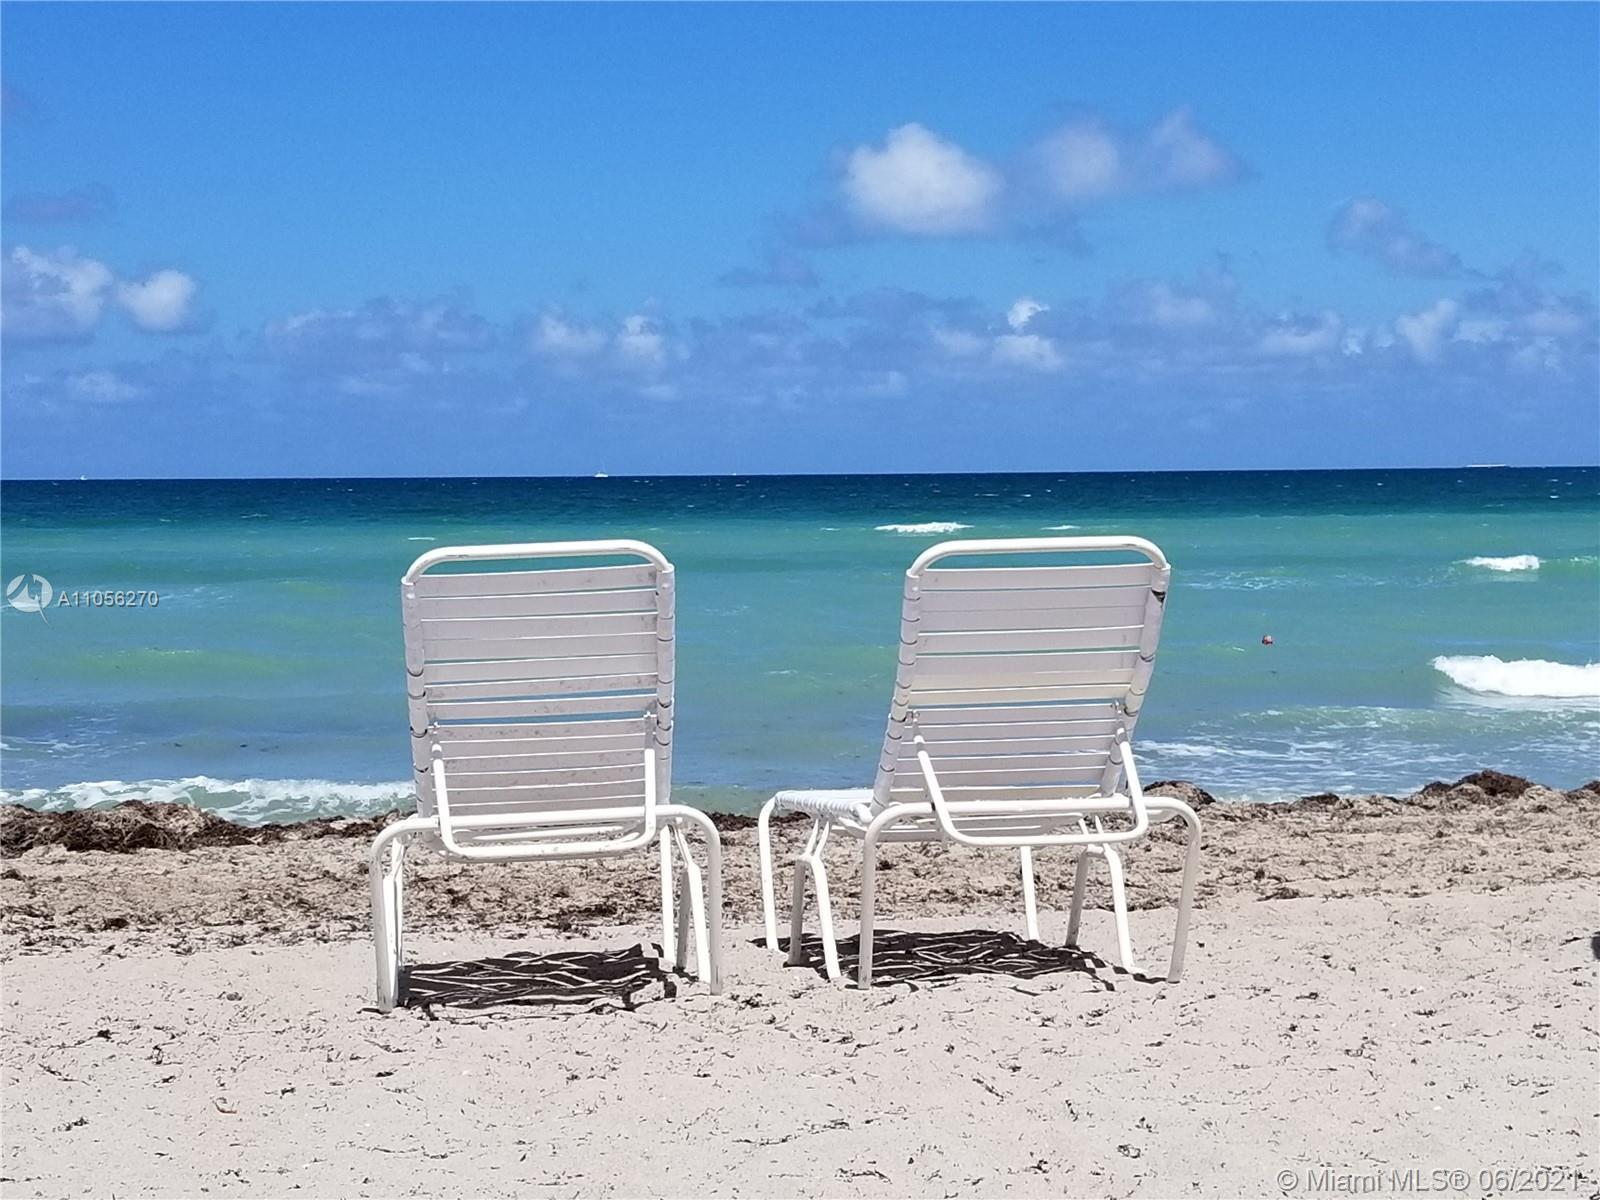 EXPERIENCE THE GROWTH OF EXCLUSIVE HALLANDALE BEACH LIFESTYLE IN THIS PLUS+SIZED  1BDRM/1BATH BEACH